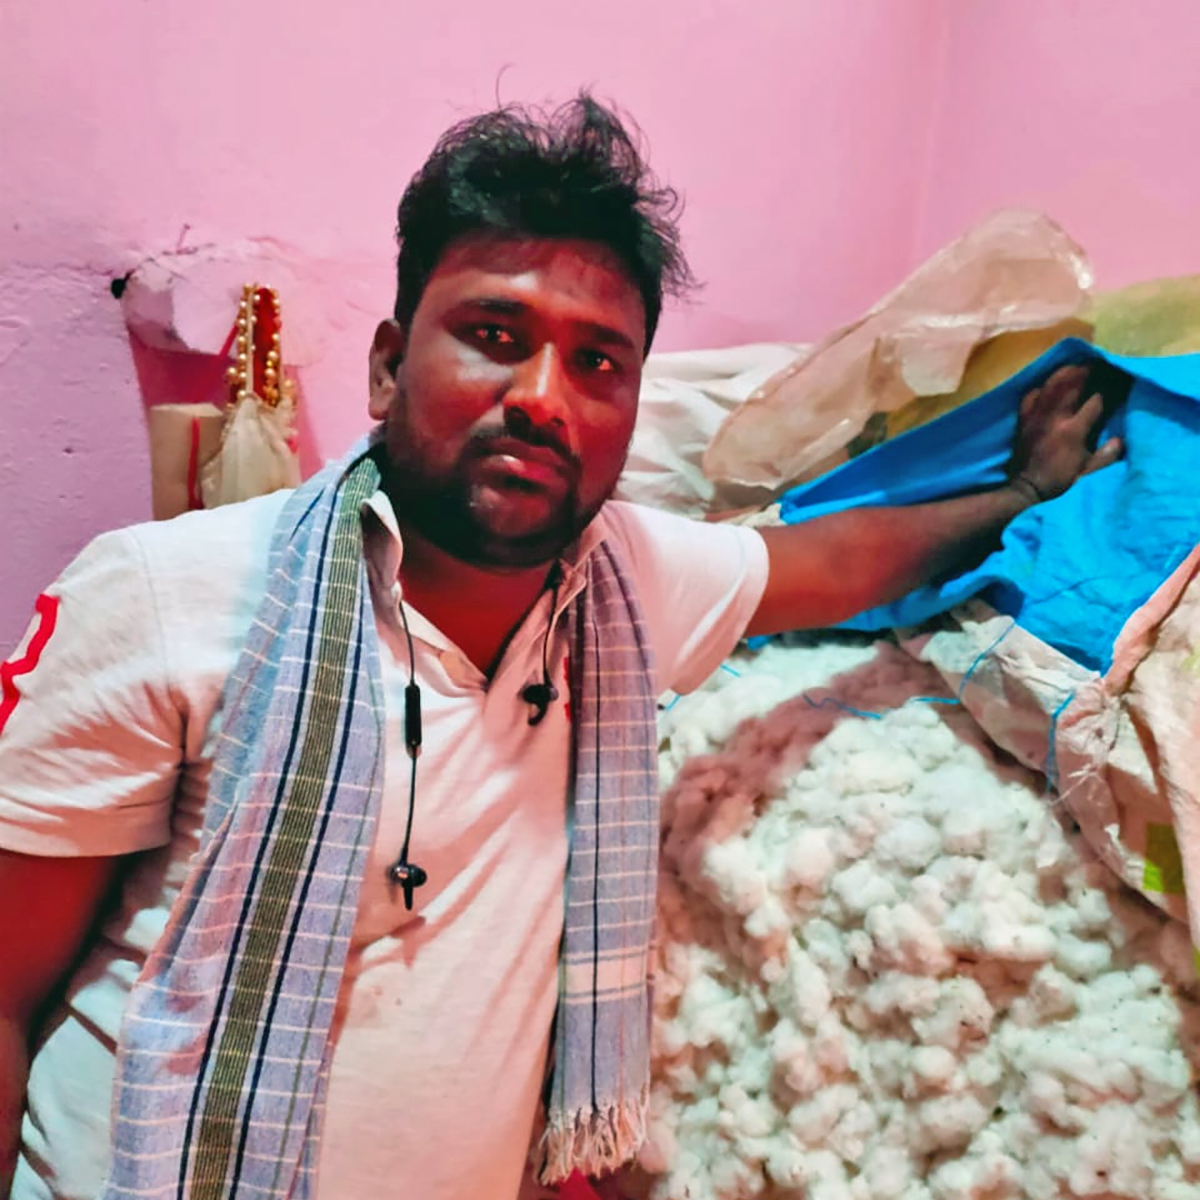 Kiran Pawar, a farmer from Latur, Maharashtra shows his cotton produce left unsold due to the COVID-19 lockdown. Photo from Kiran Pawar.